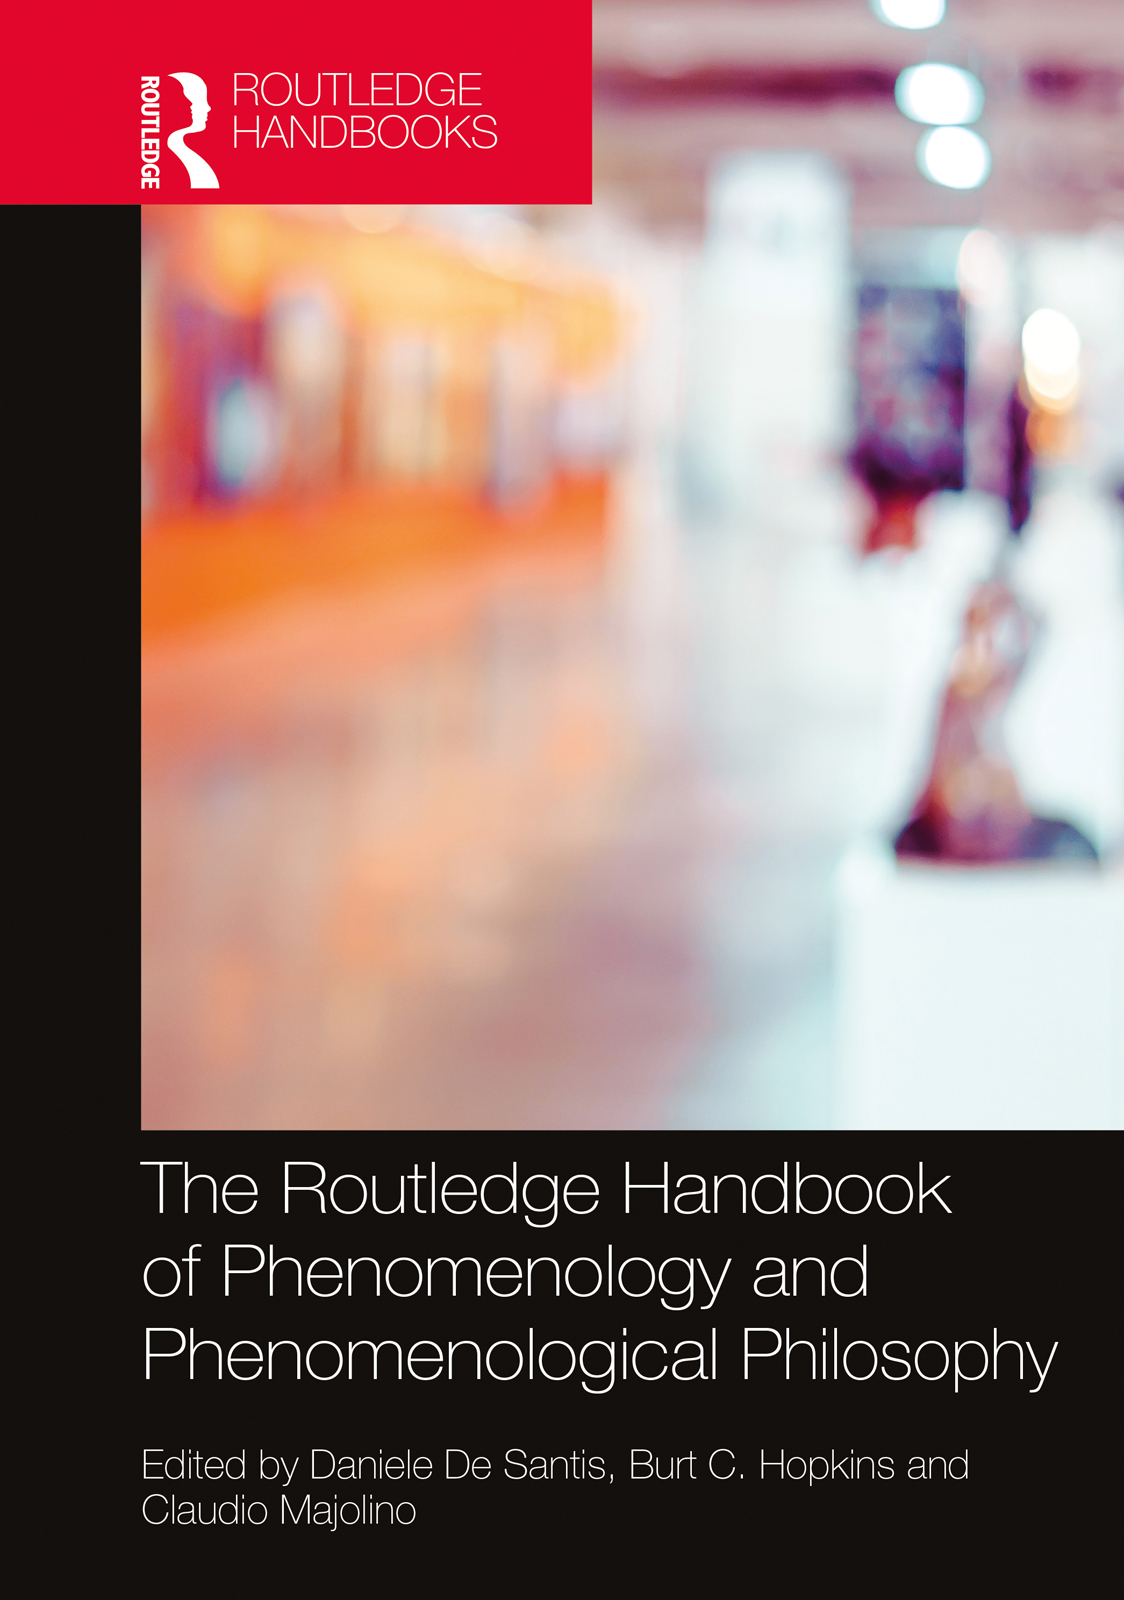 The Routledge Handbook of Phenomenology and Phenomenological Philosophy